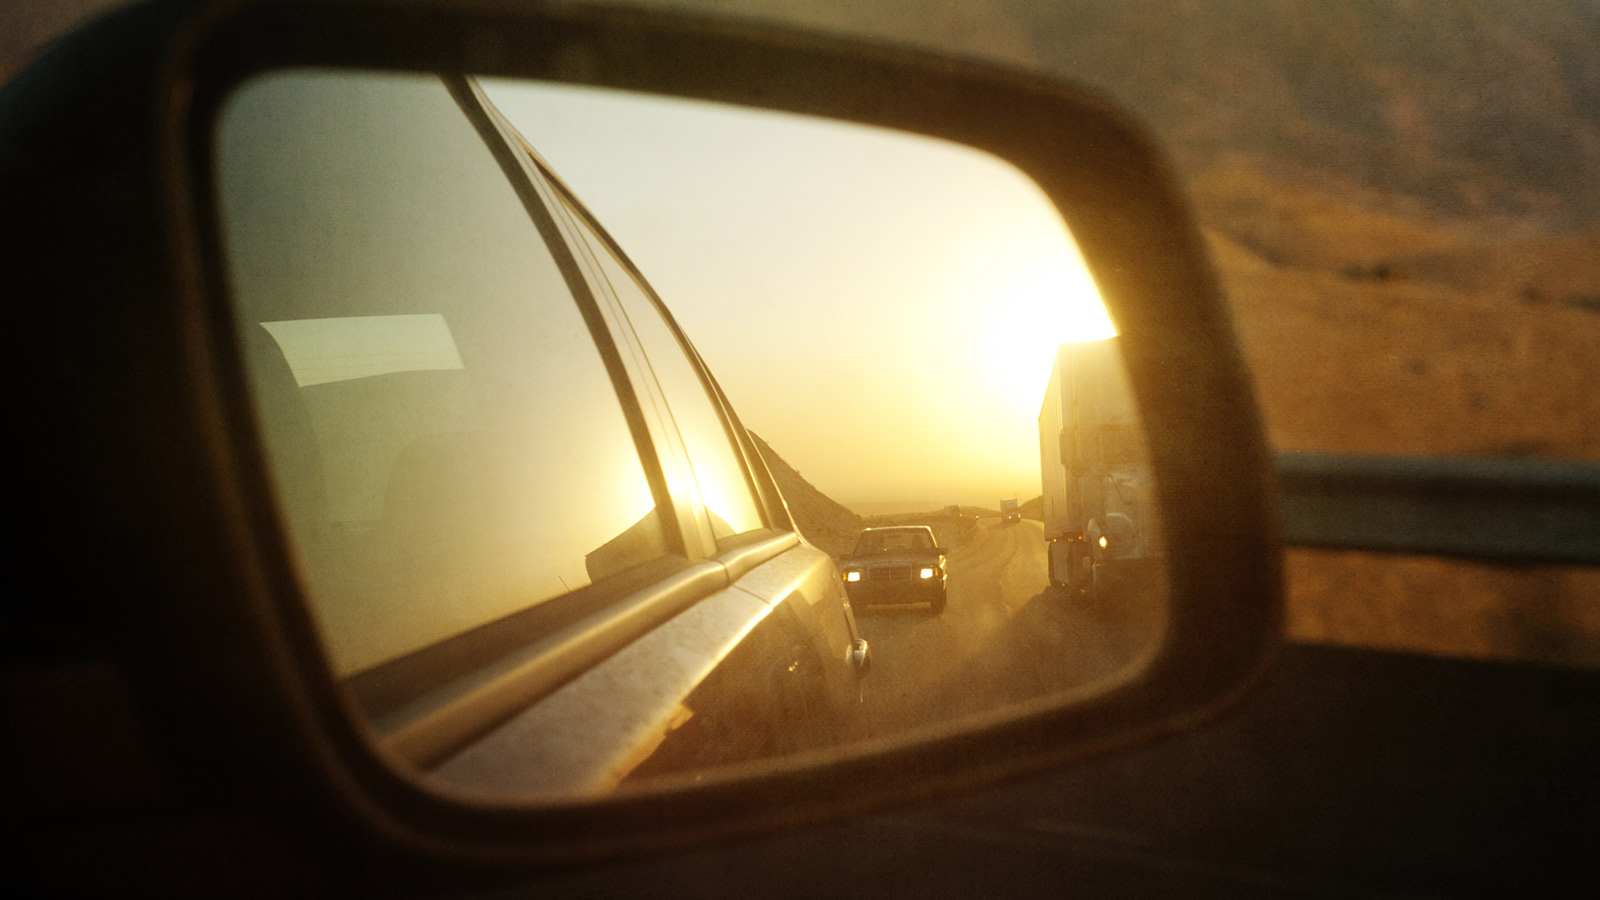 Side mirror on car showing traffic behind car.